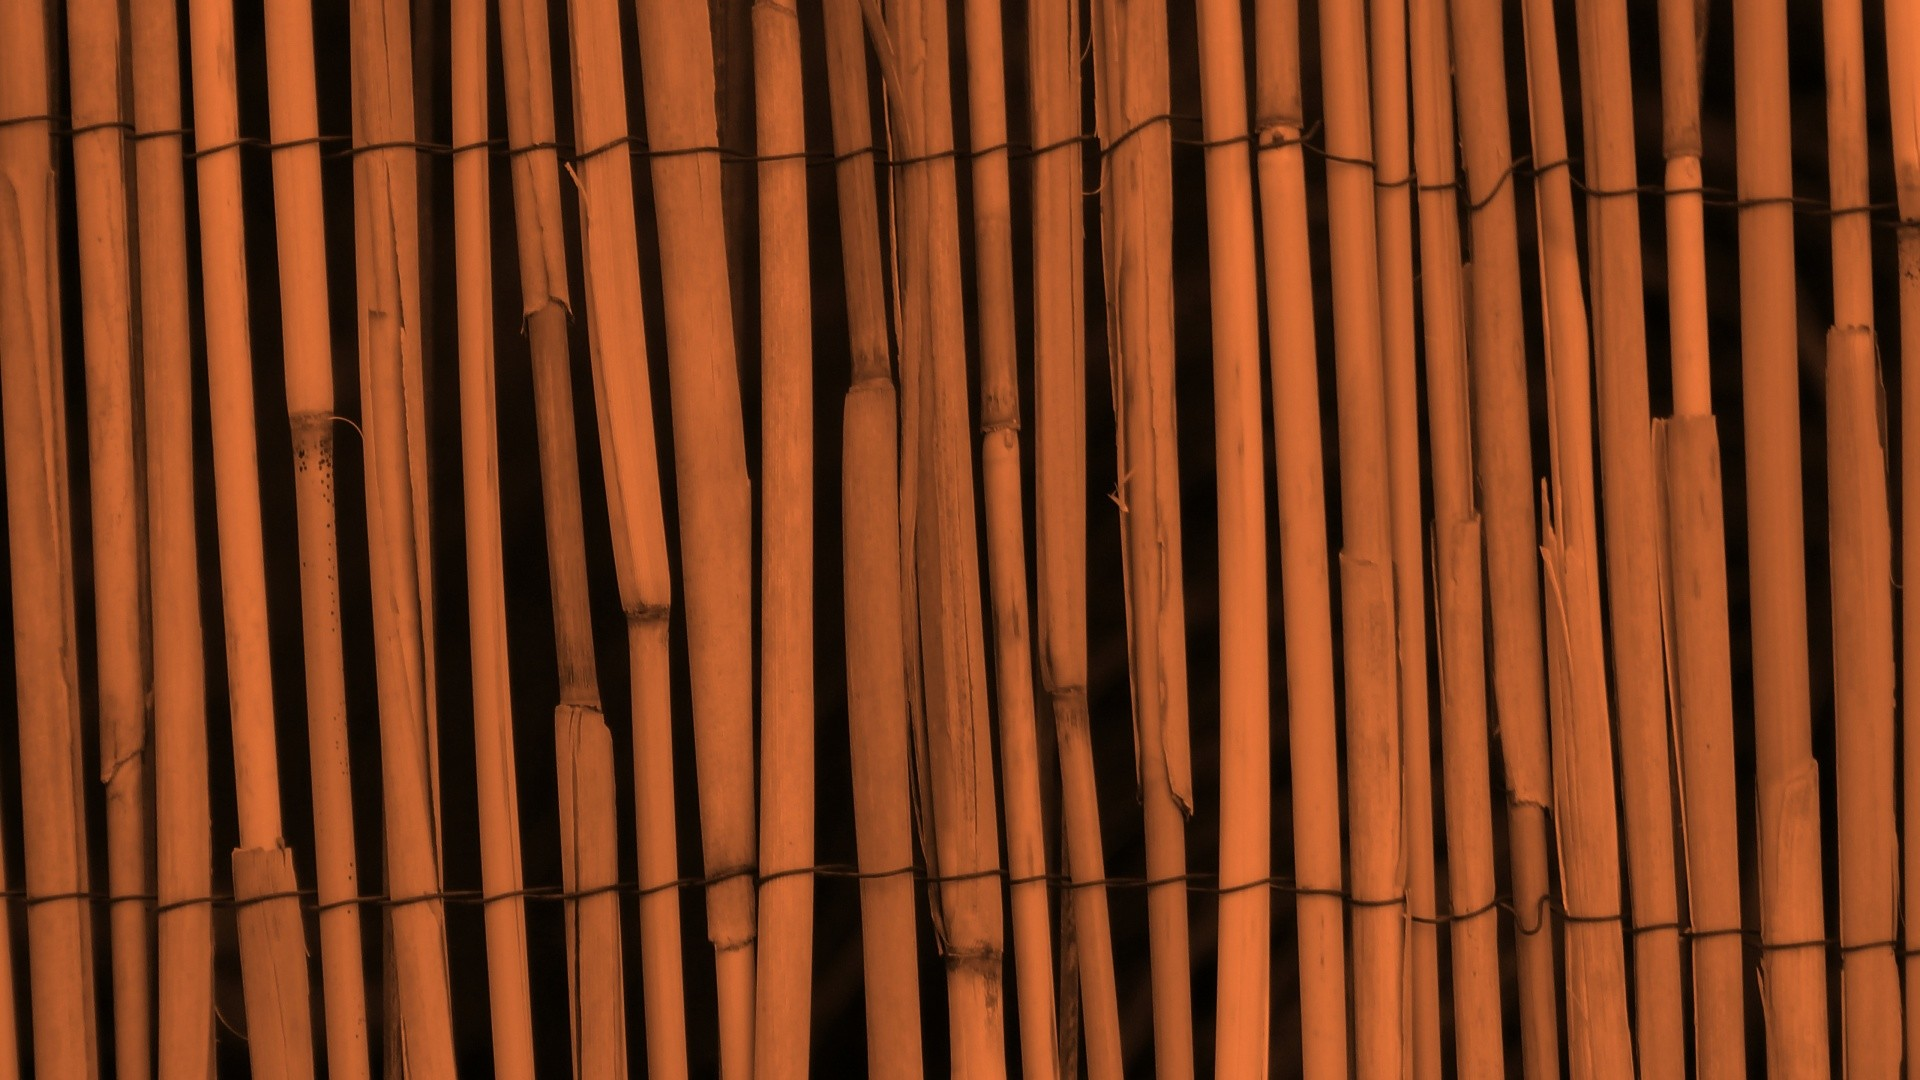 1920x1080 Brown Bamboo Wood Background